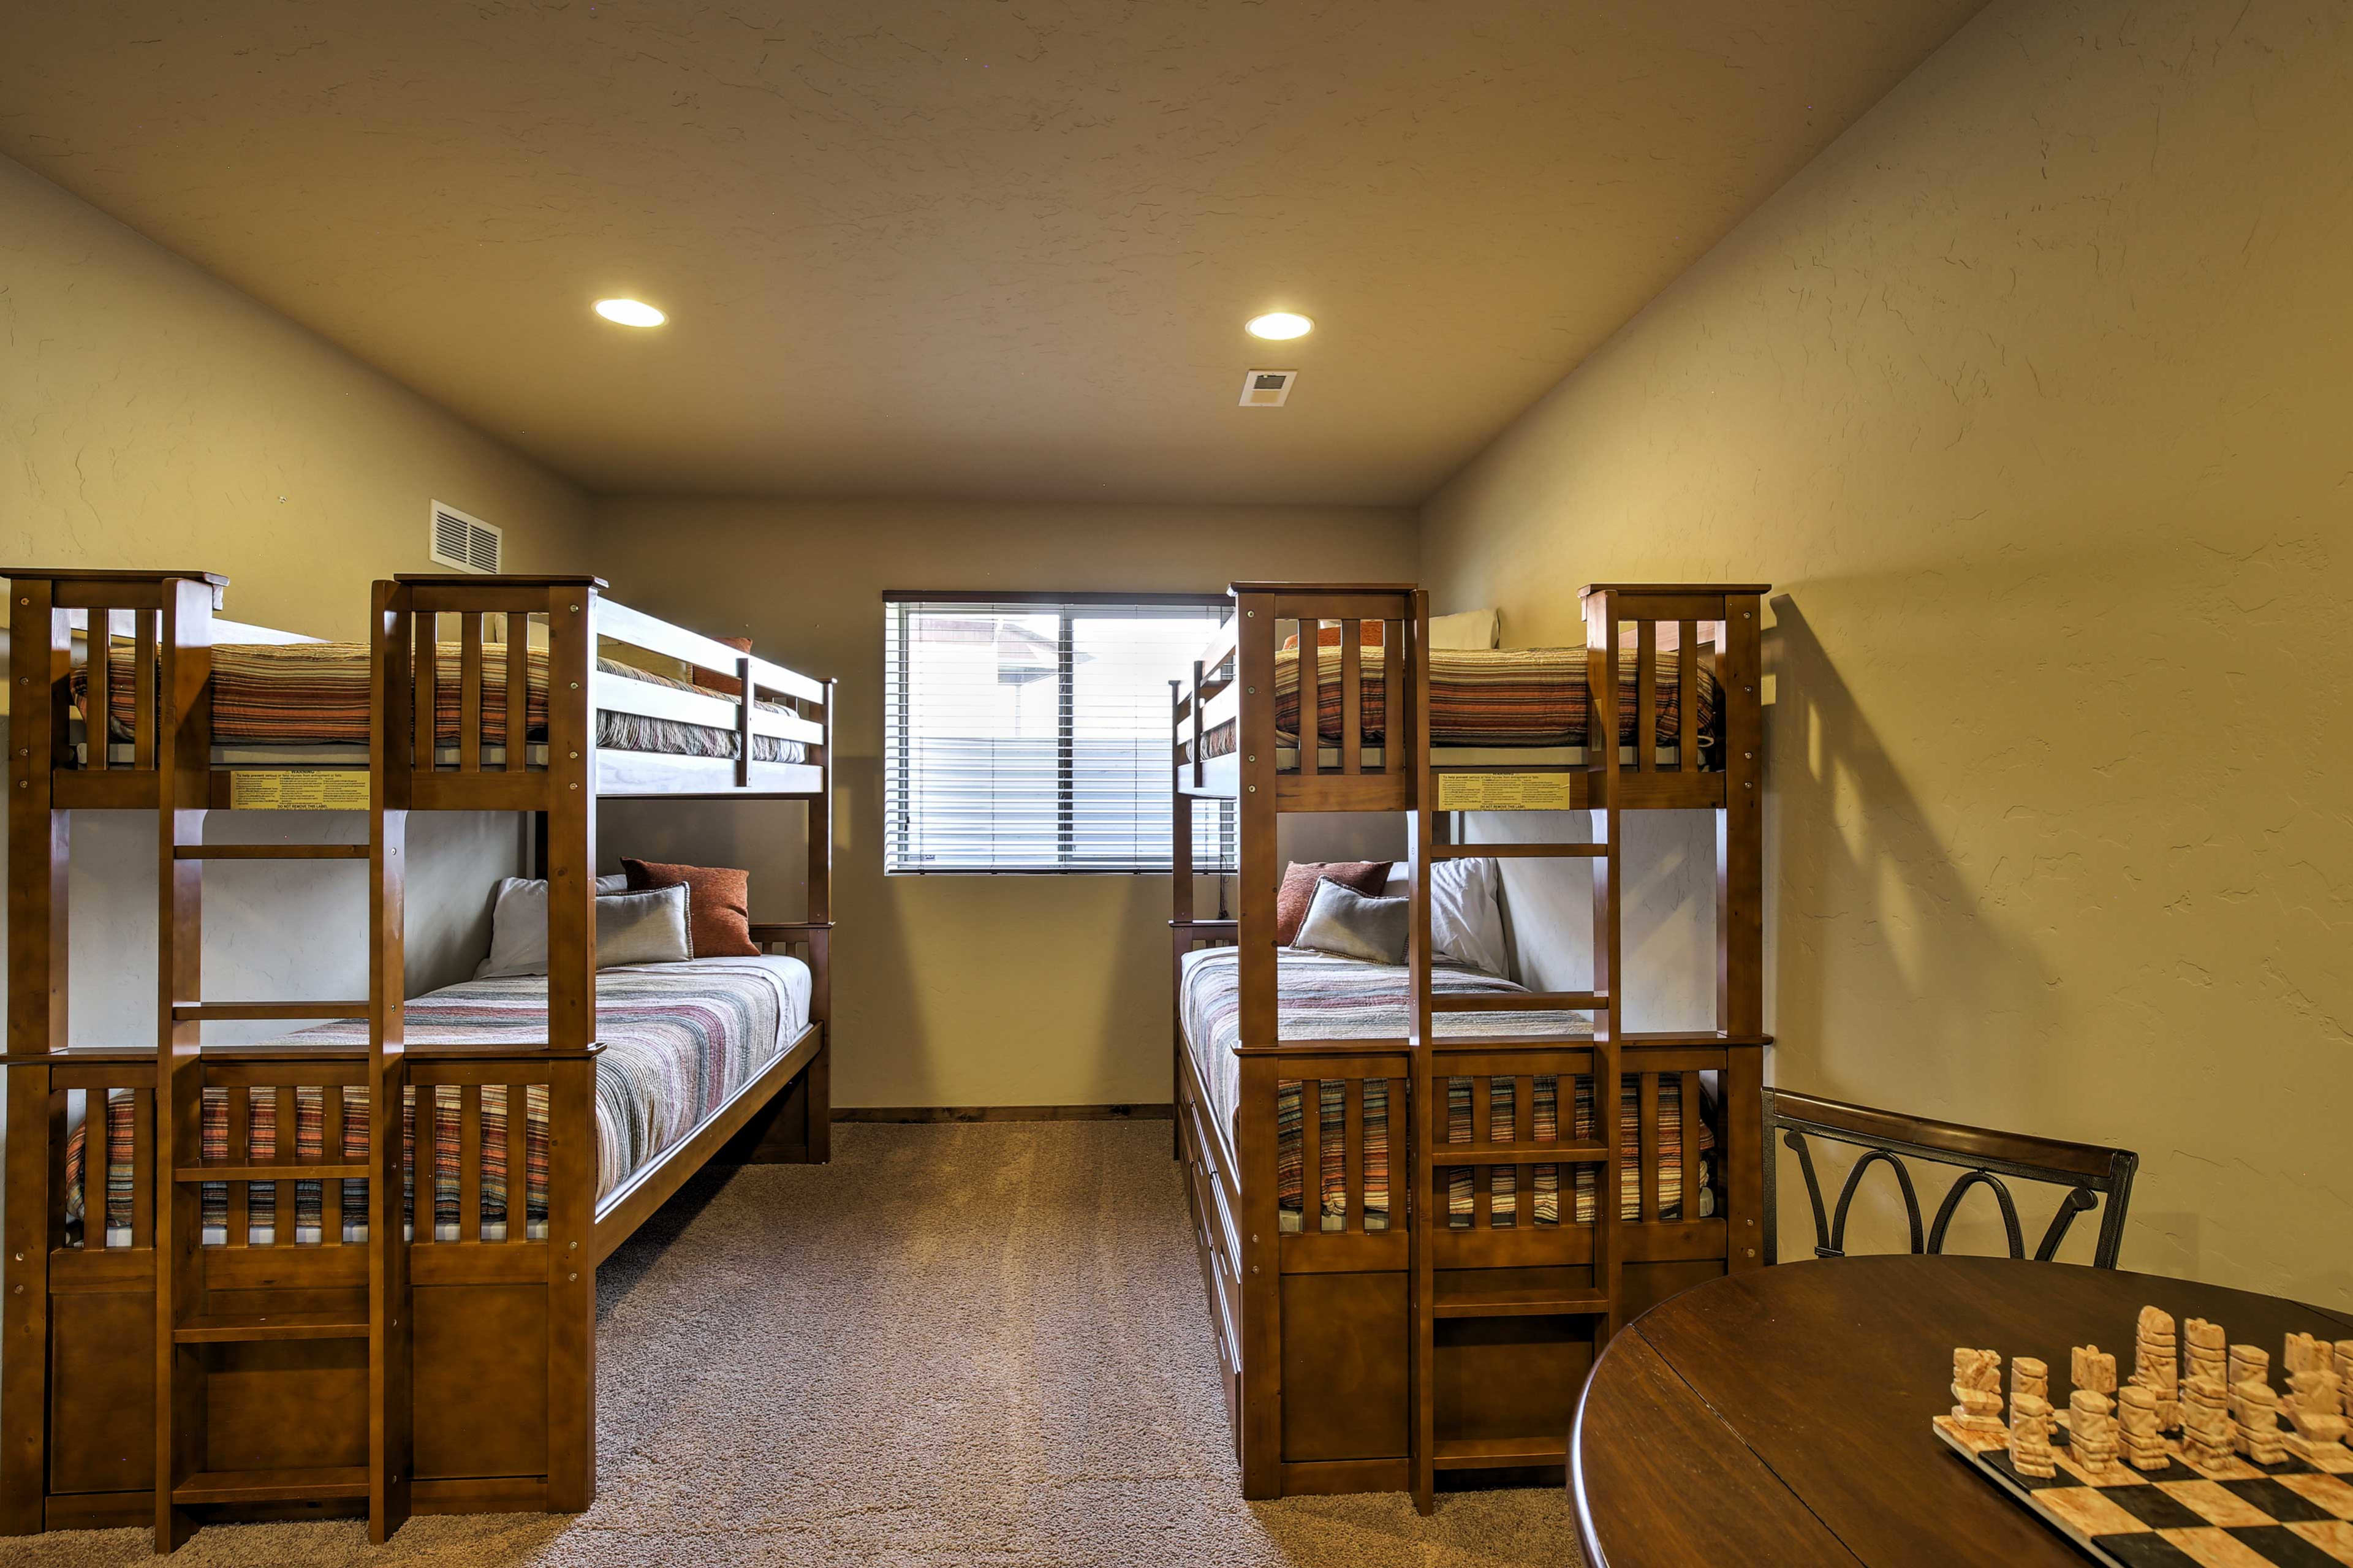 The basement has 2 twin-over-twin bunk beds and a twin trundle bed.